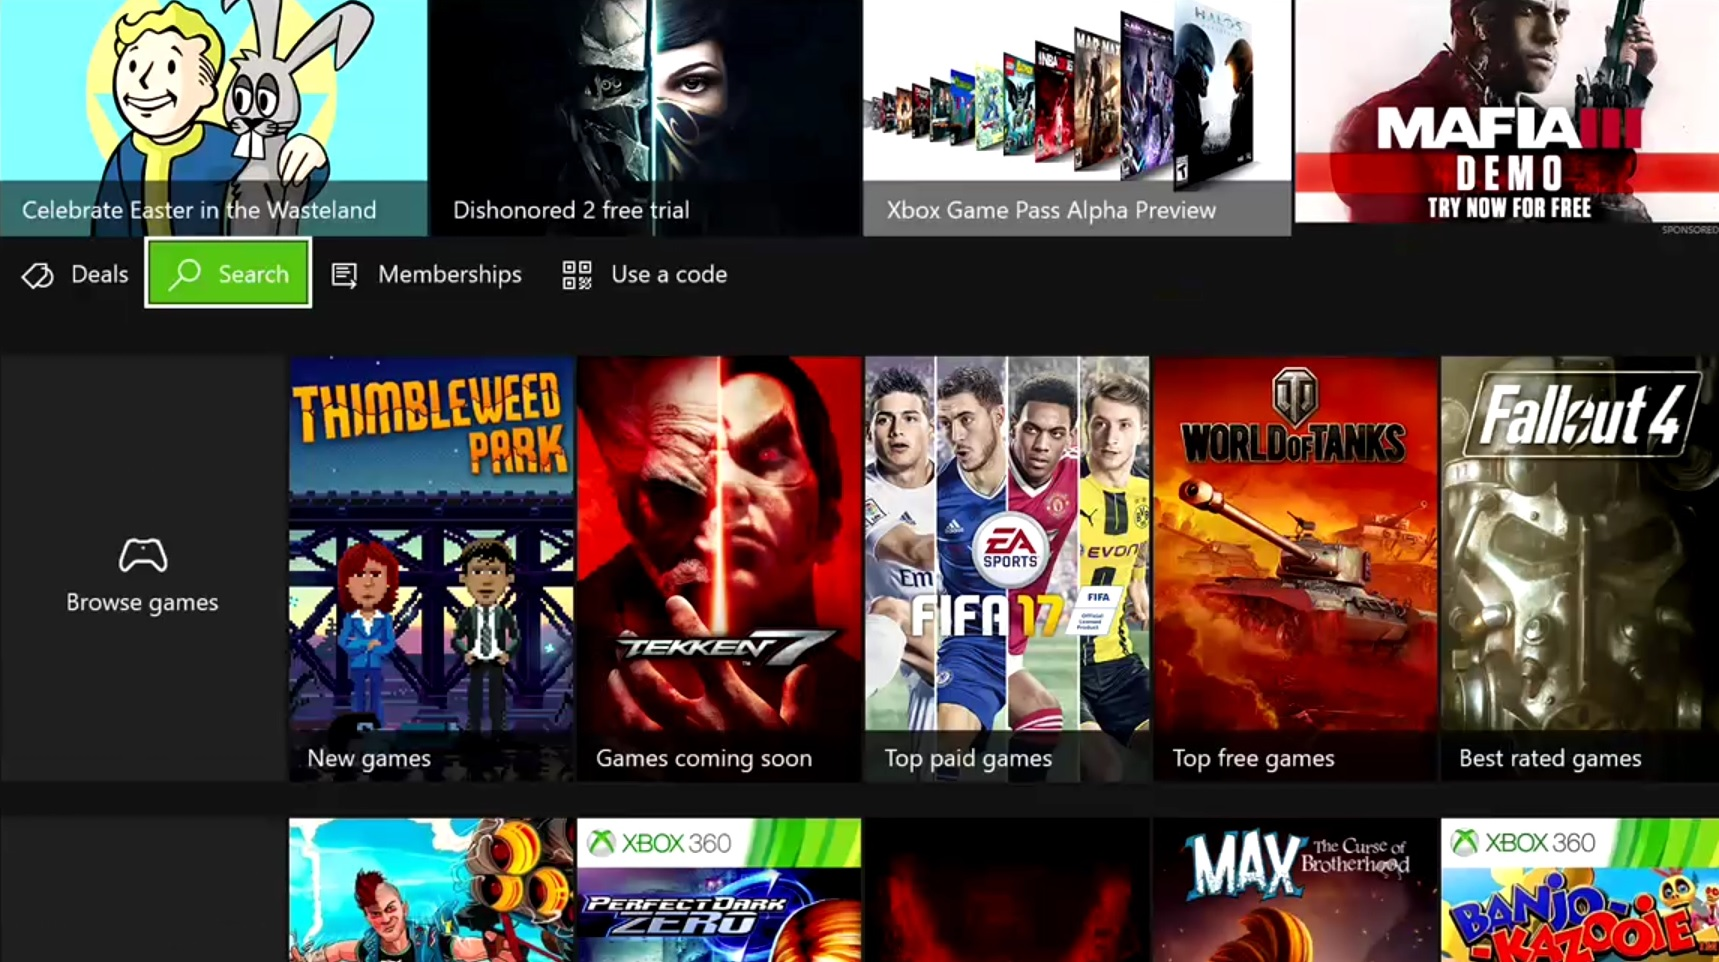 Microsoft deconfirms report that it plans to reduce its cut on Xbox game sales screenshot